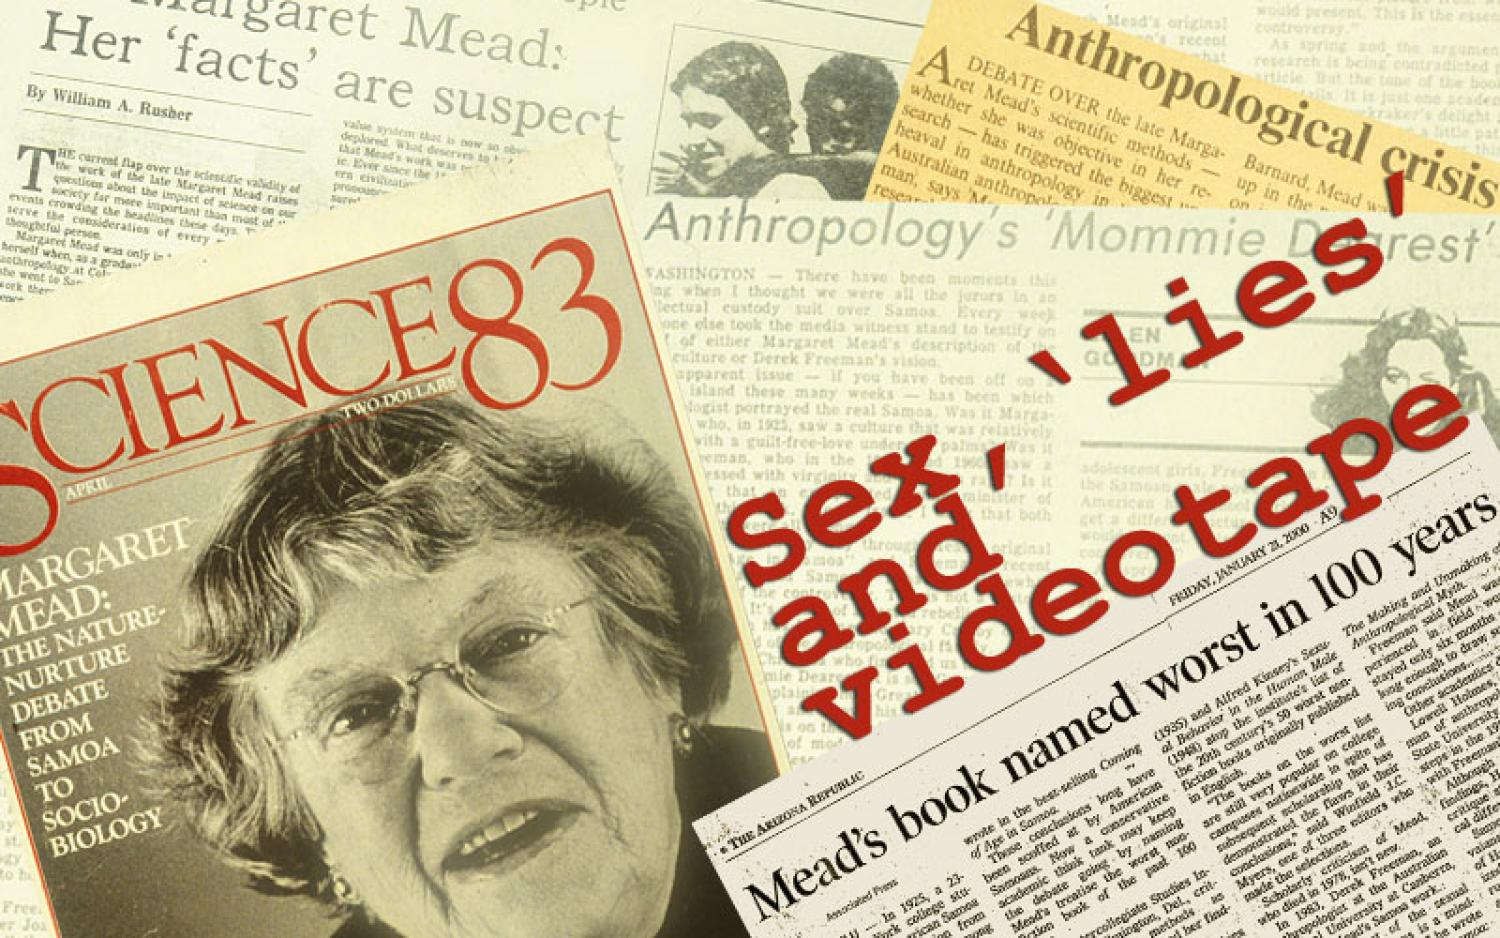 Newspaper clipping about Margaret Mead